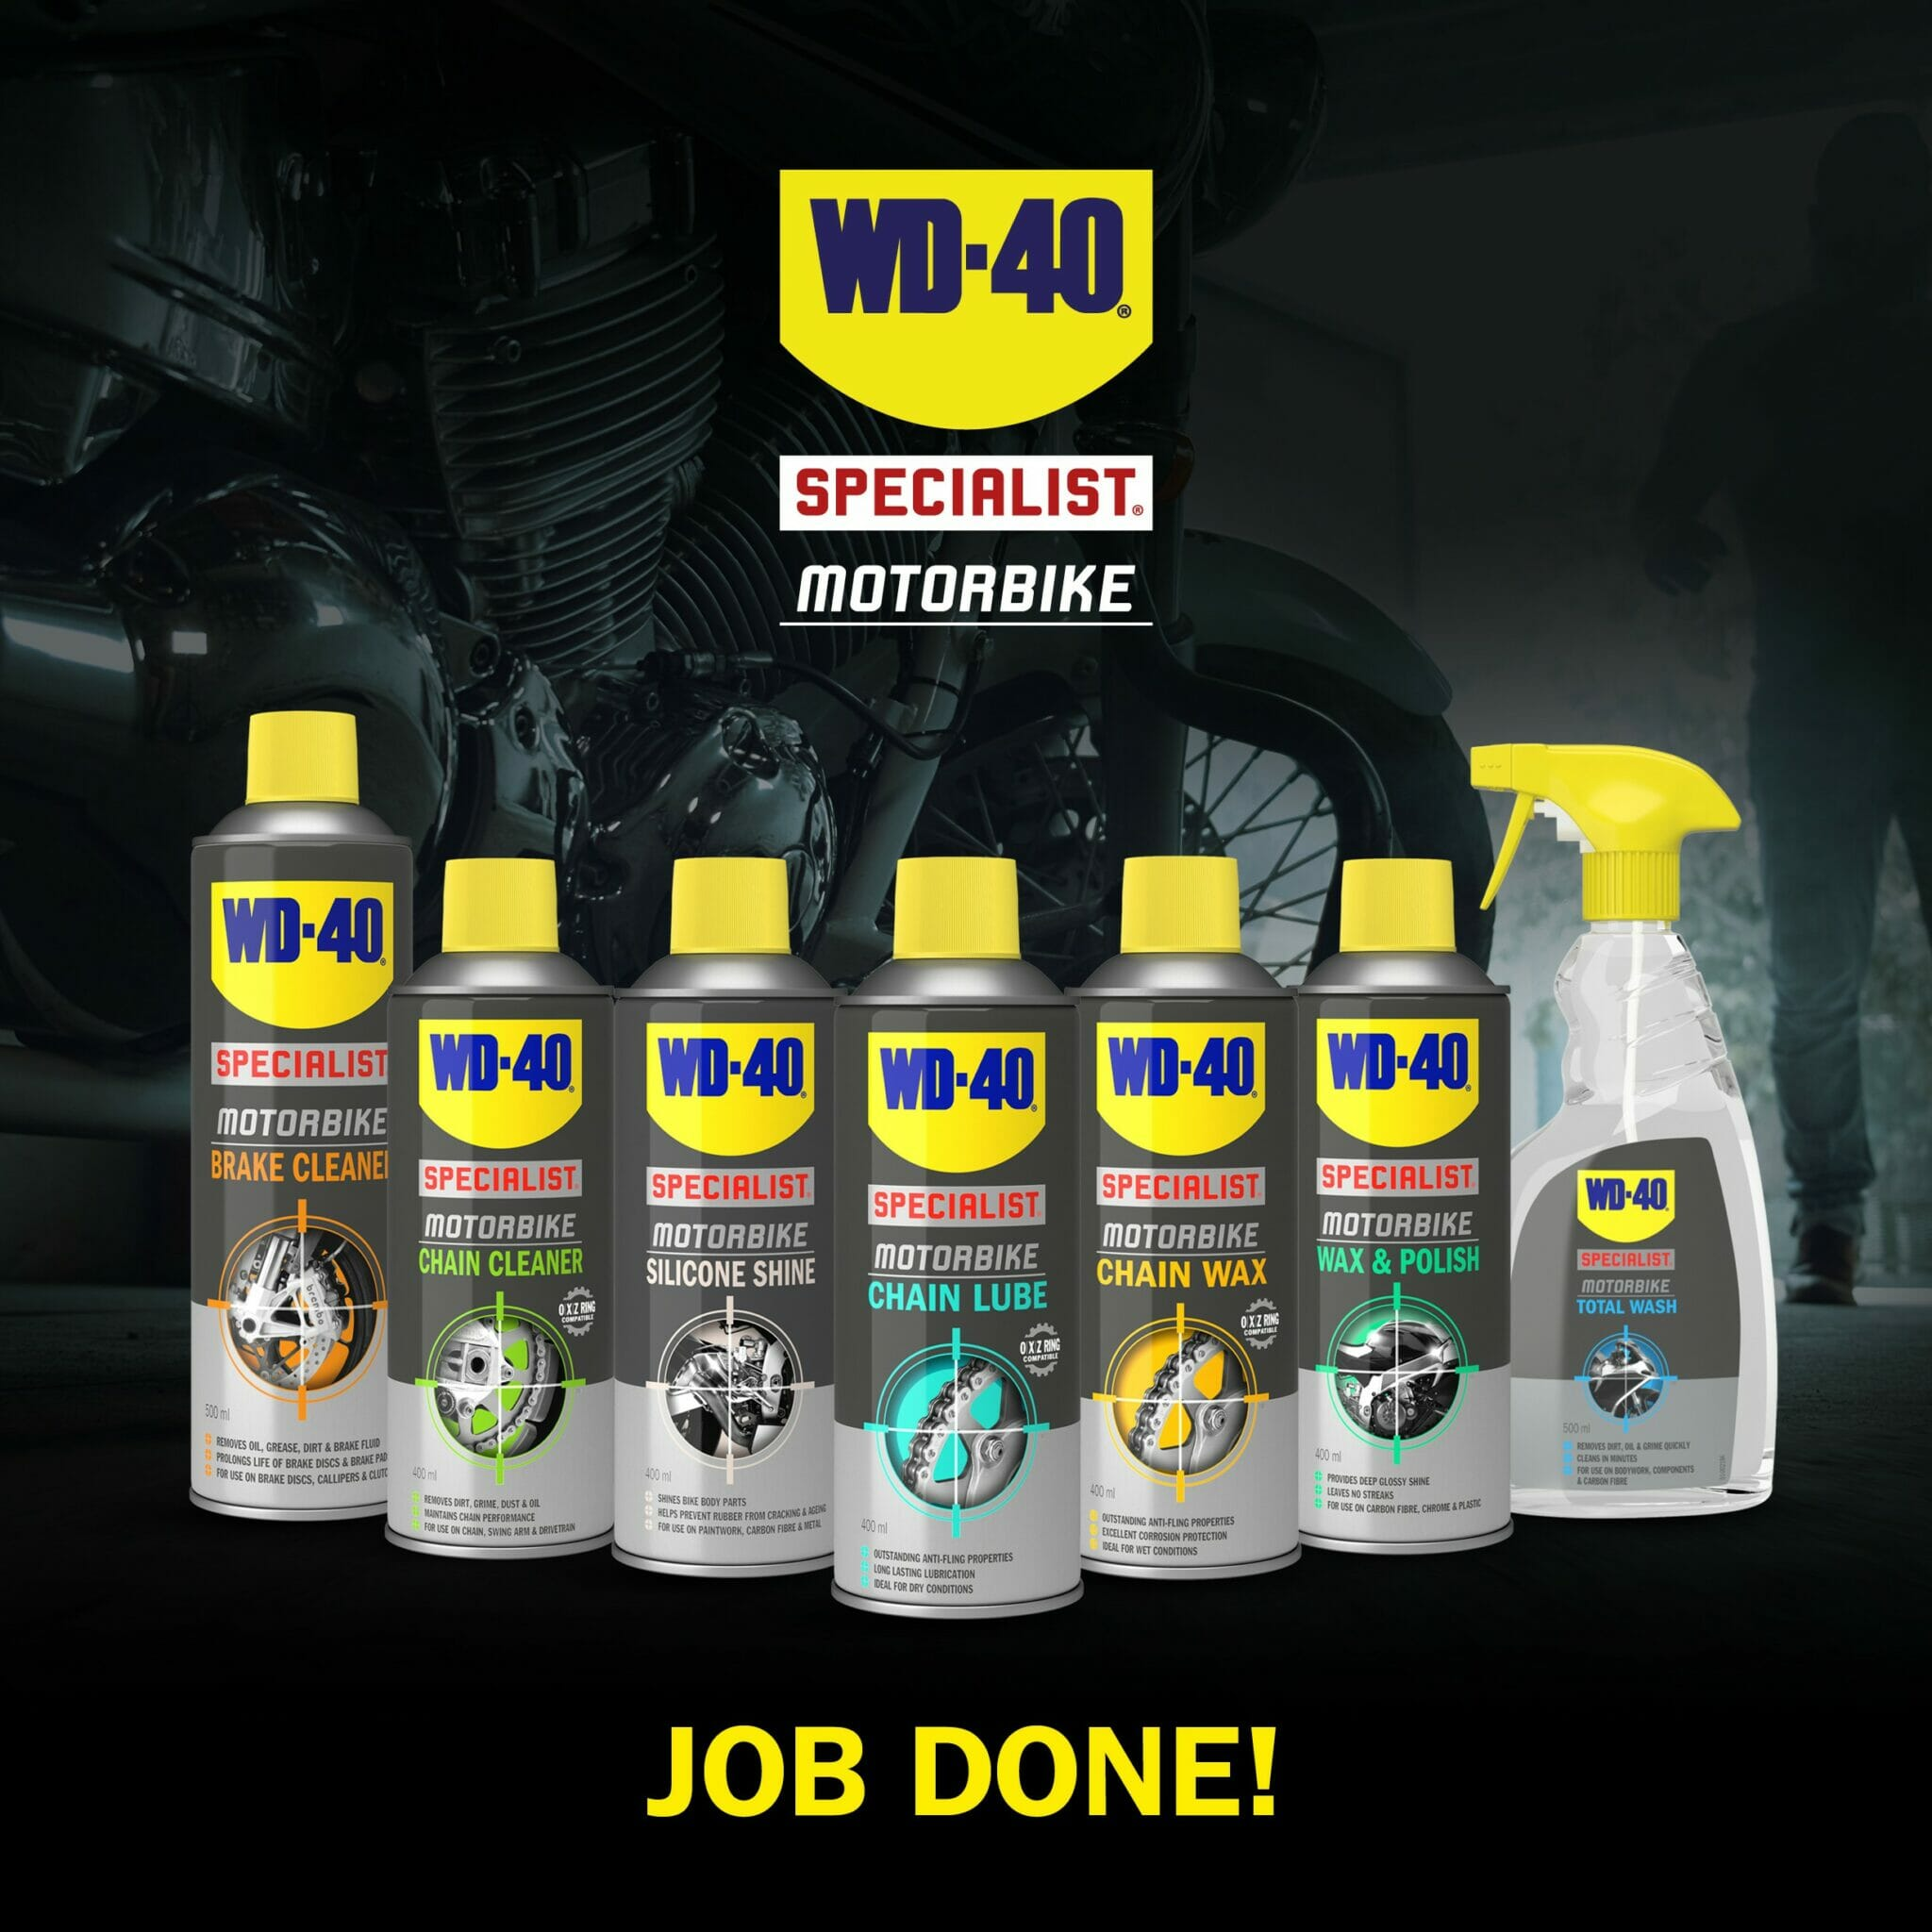 wd40 motorbike chain wax how to use part 9